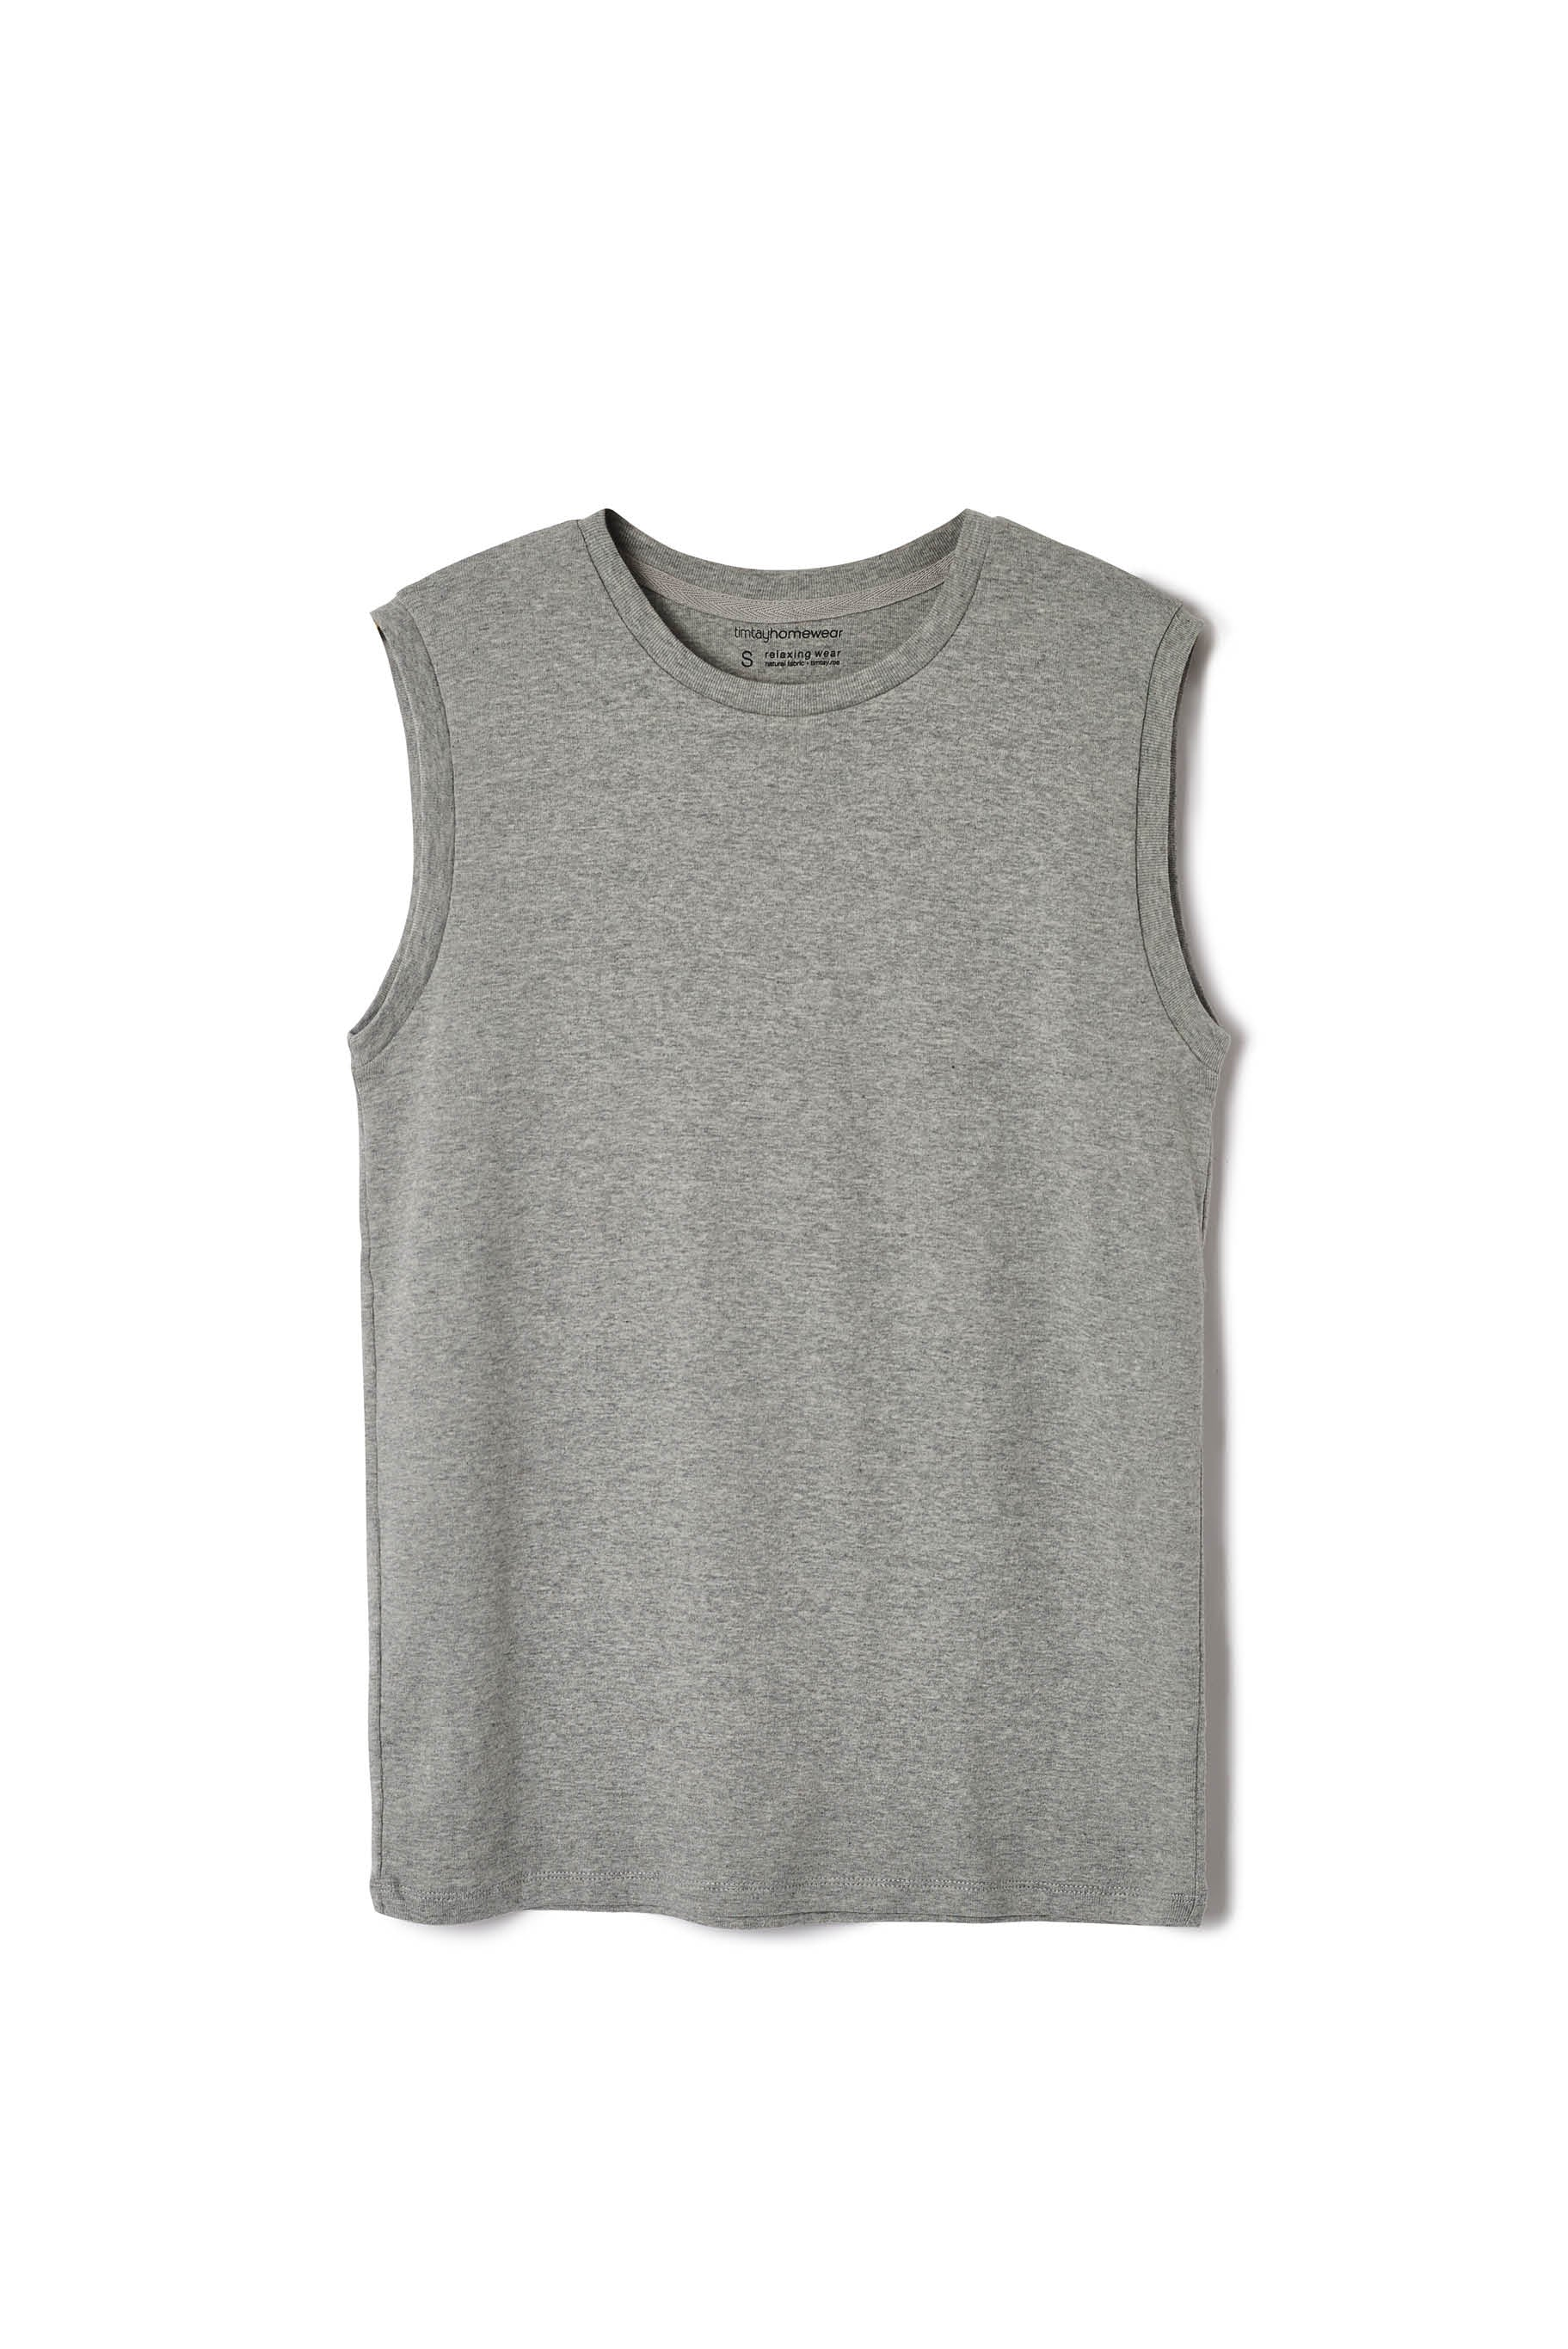 HW - M Tank Top (2 Colors)